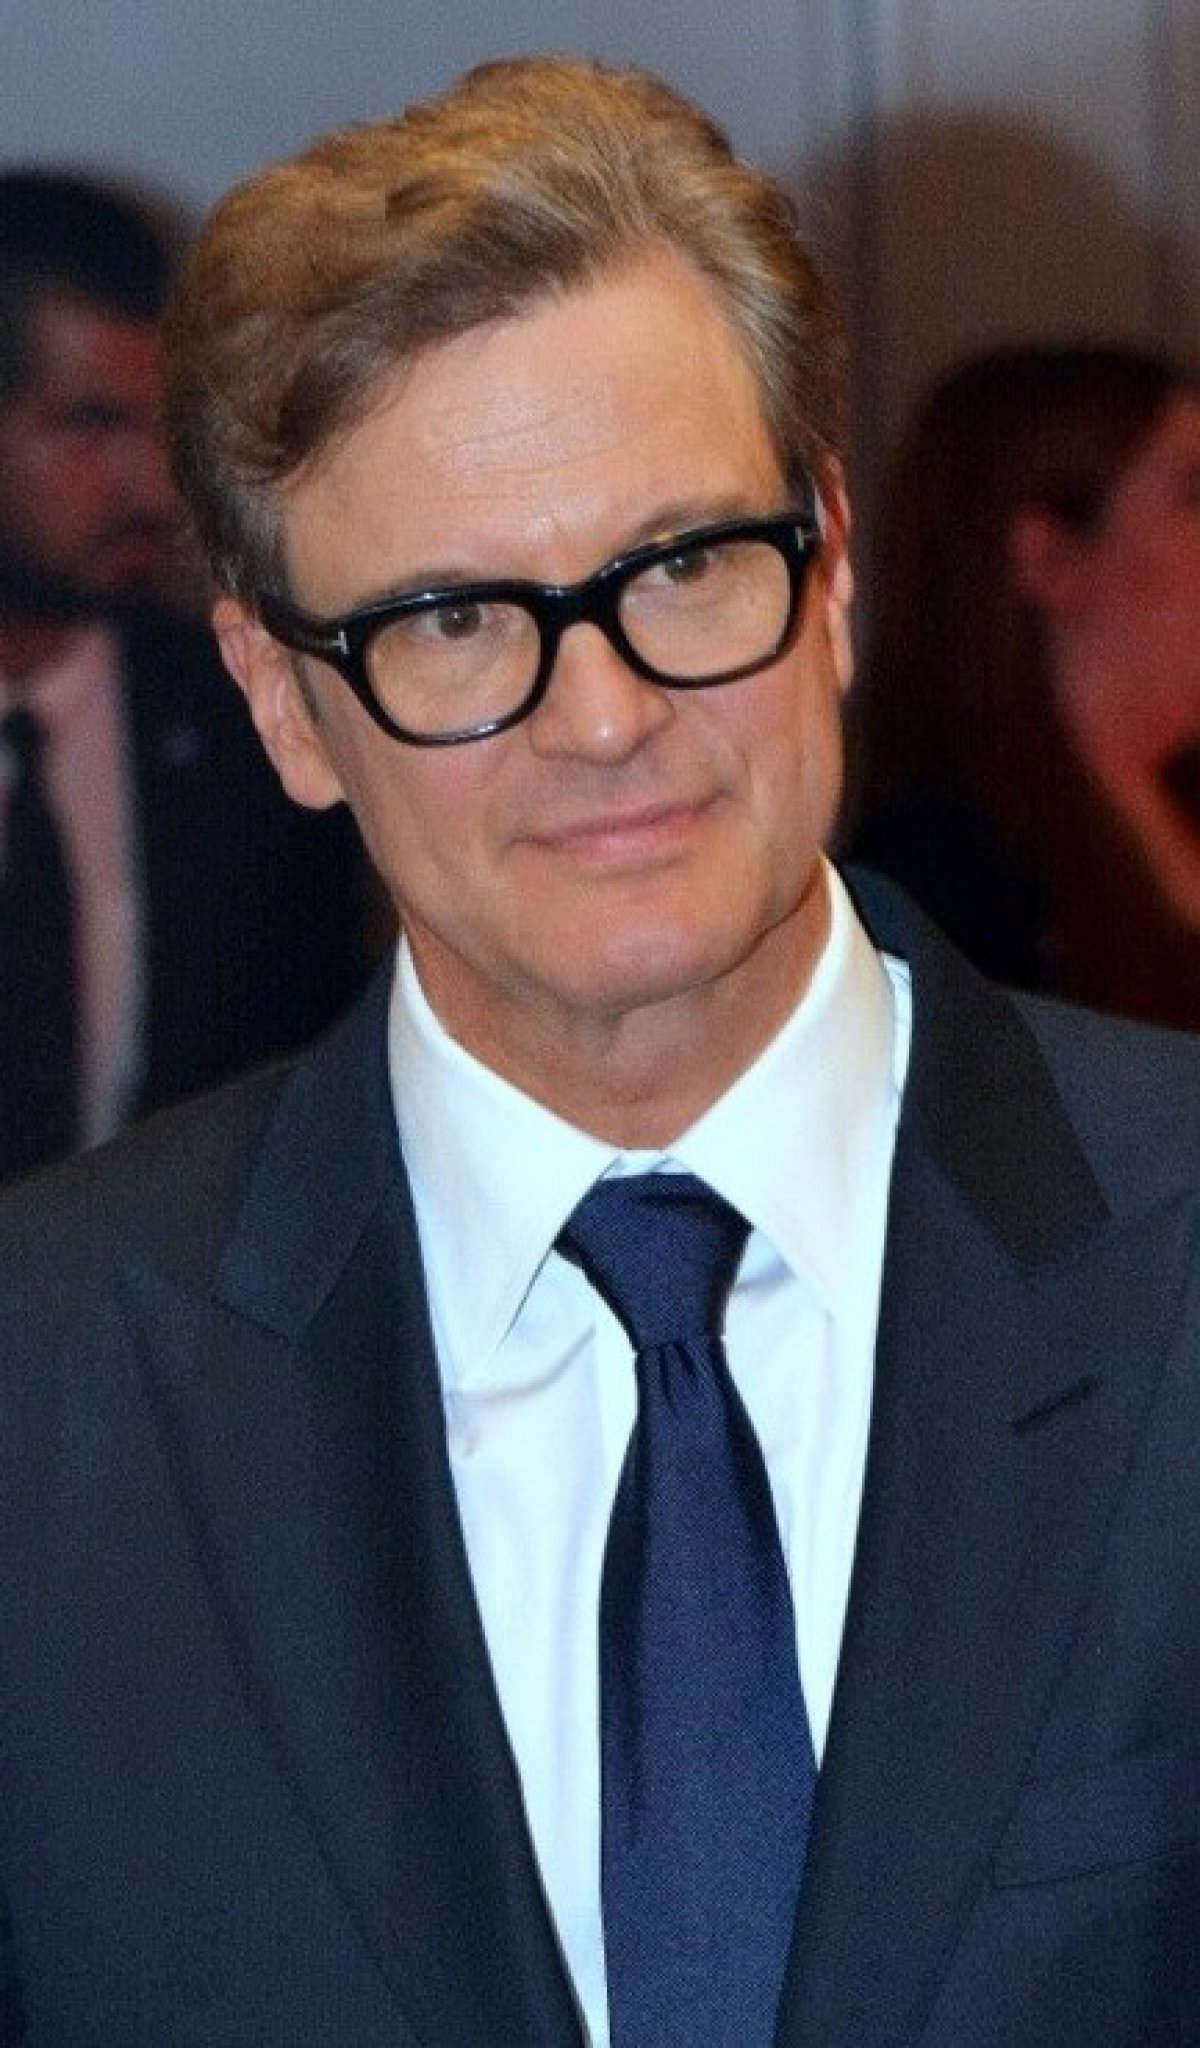 Colin firth now has dual british italian citizenship reality tv get more reality tv world follow us on twitter like us on facebook or add our rss feed geenschuldenfo Images